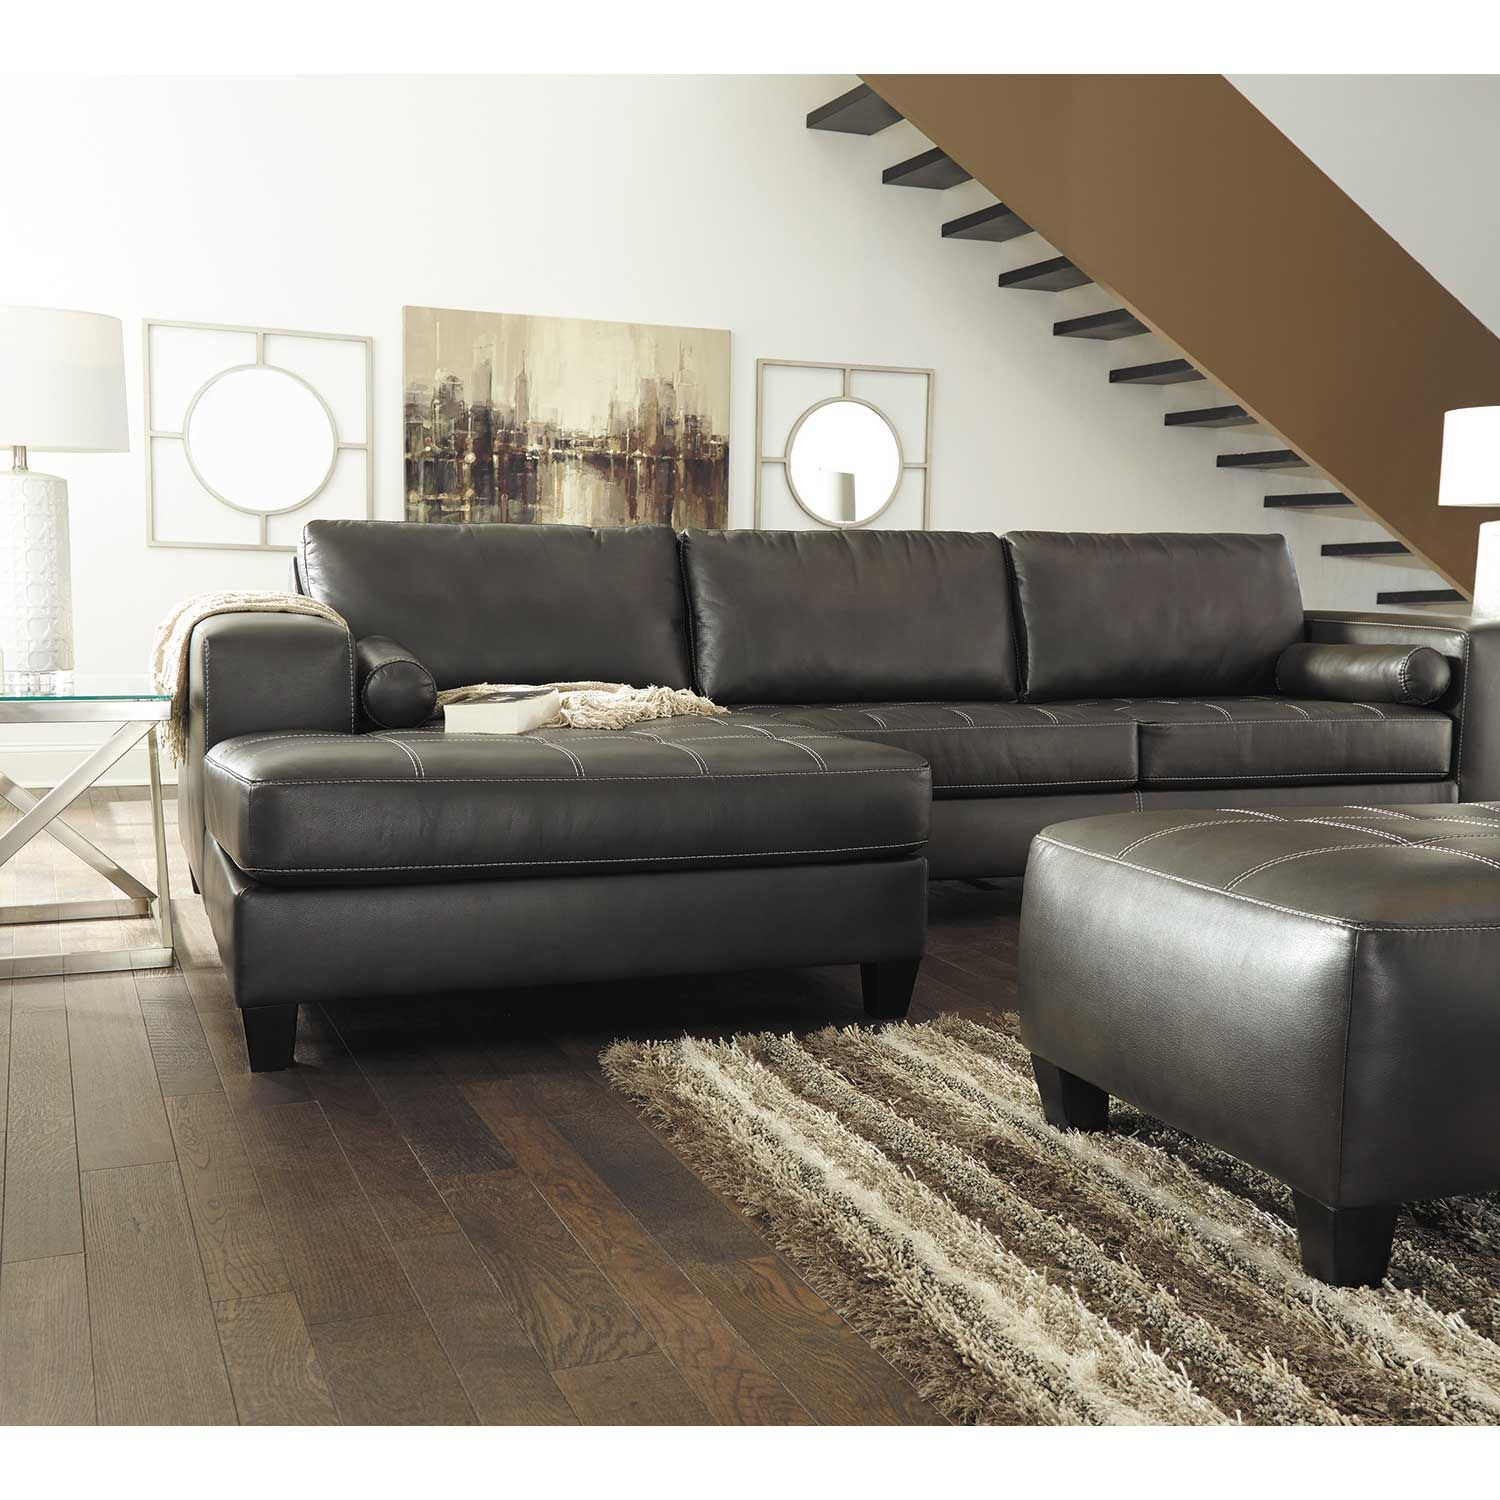 Nokomis 2 Piece Sectional With Laf Chaise 8770116/8770167 Pertaining To Avery 2 Piece Sectionals With Laf Armless Chaise (View 13 of 15)